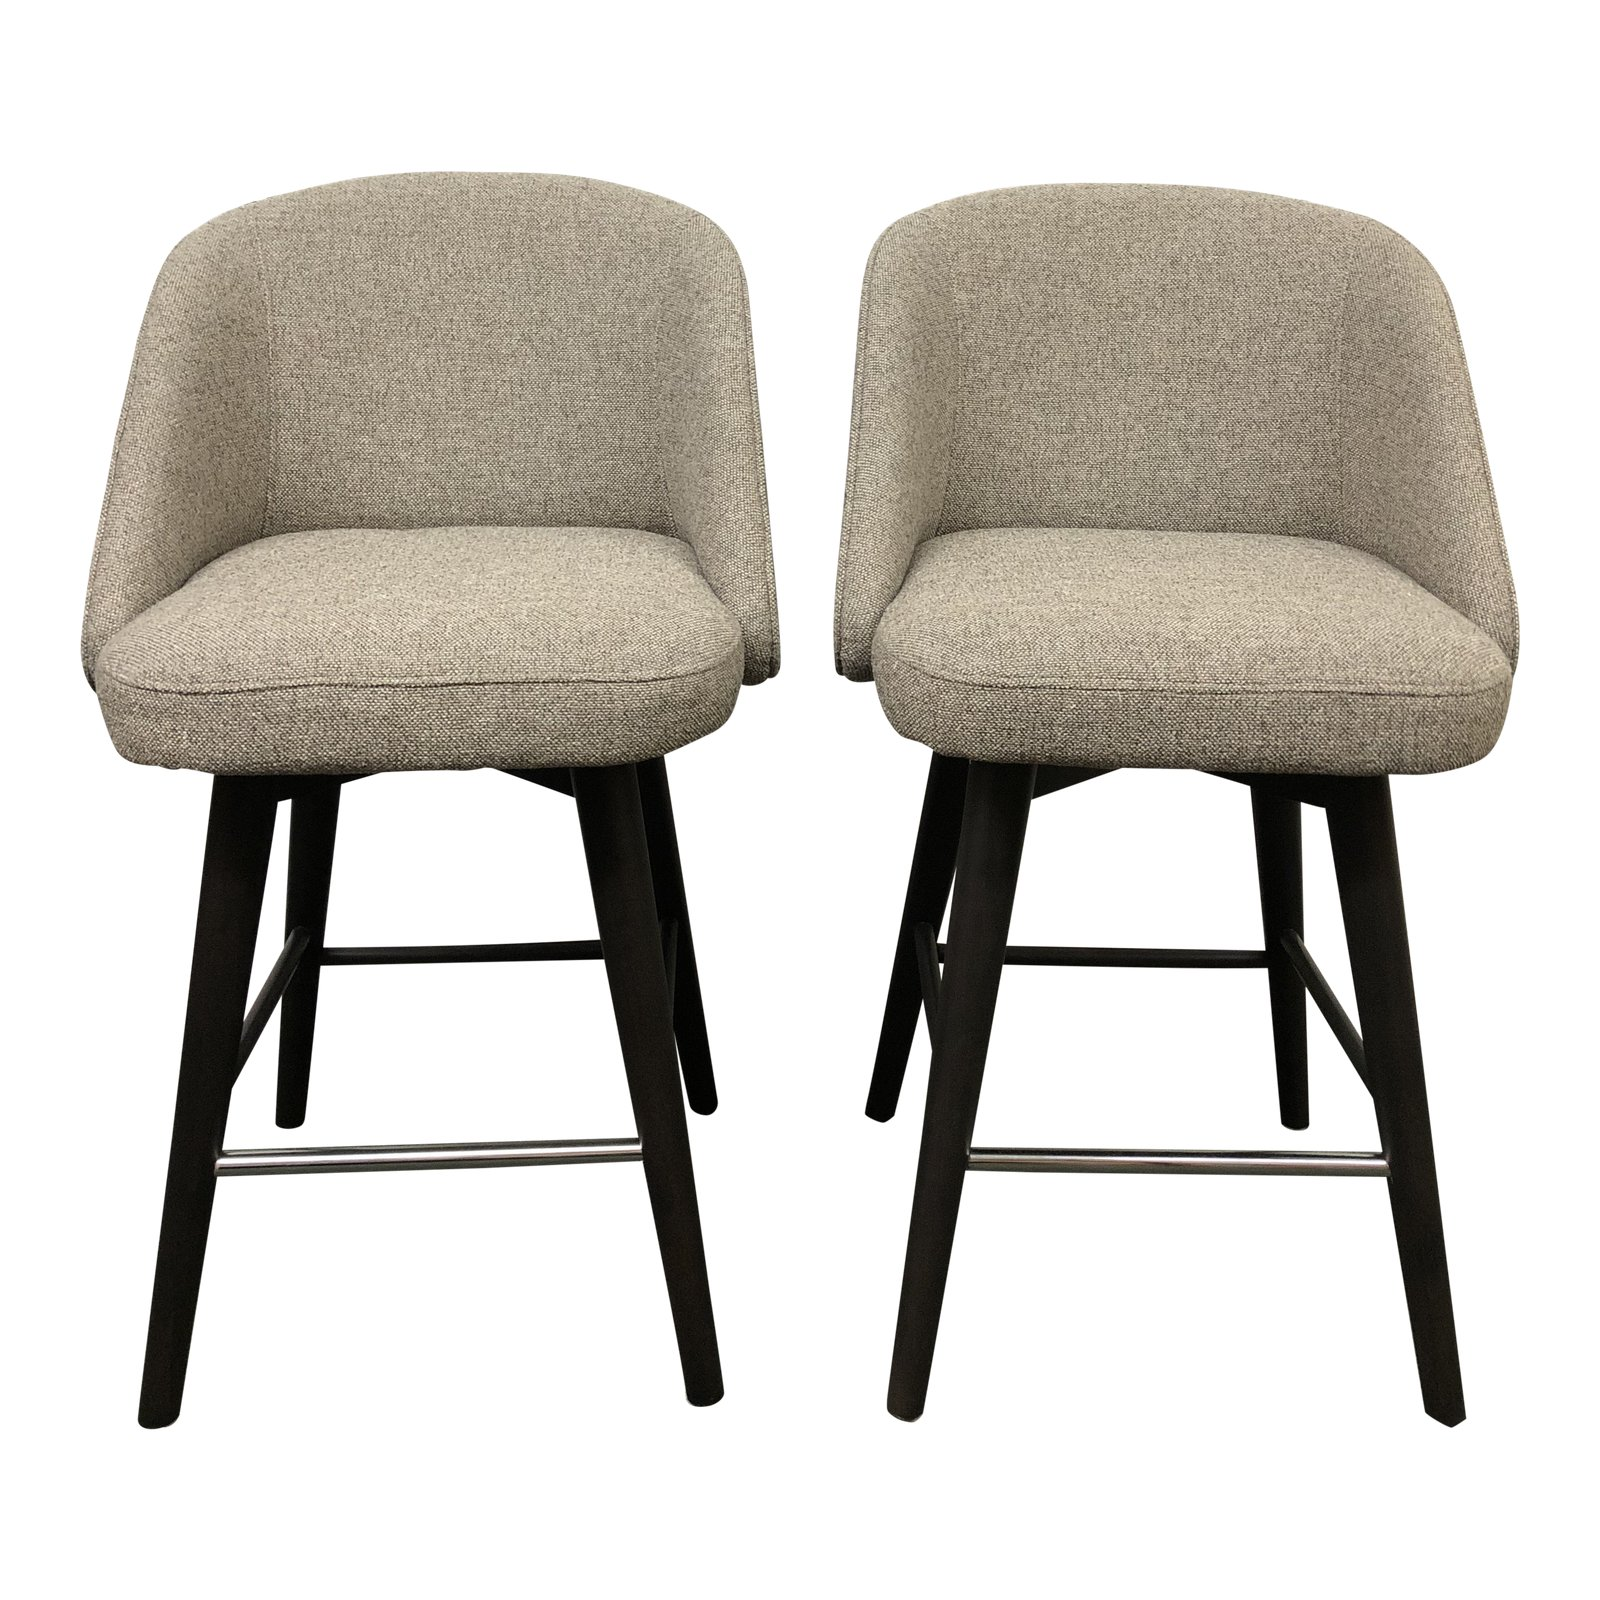 Room And Board Bar Stools: Pair Of Cora Counter Stools, By Room & Board. Original